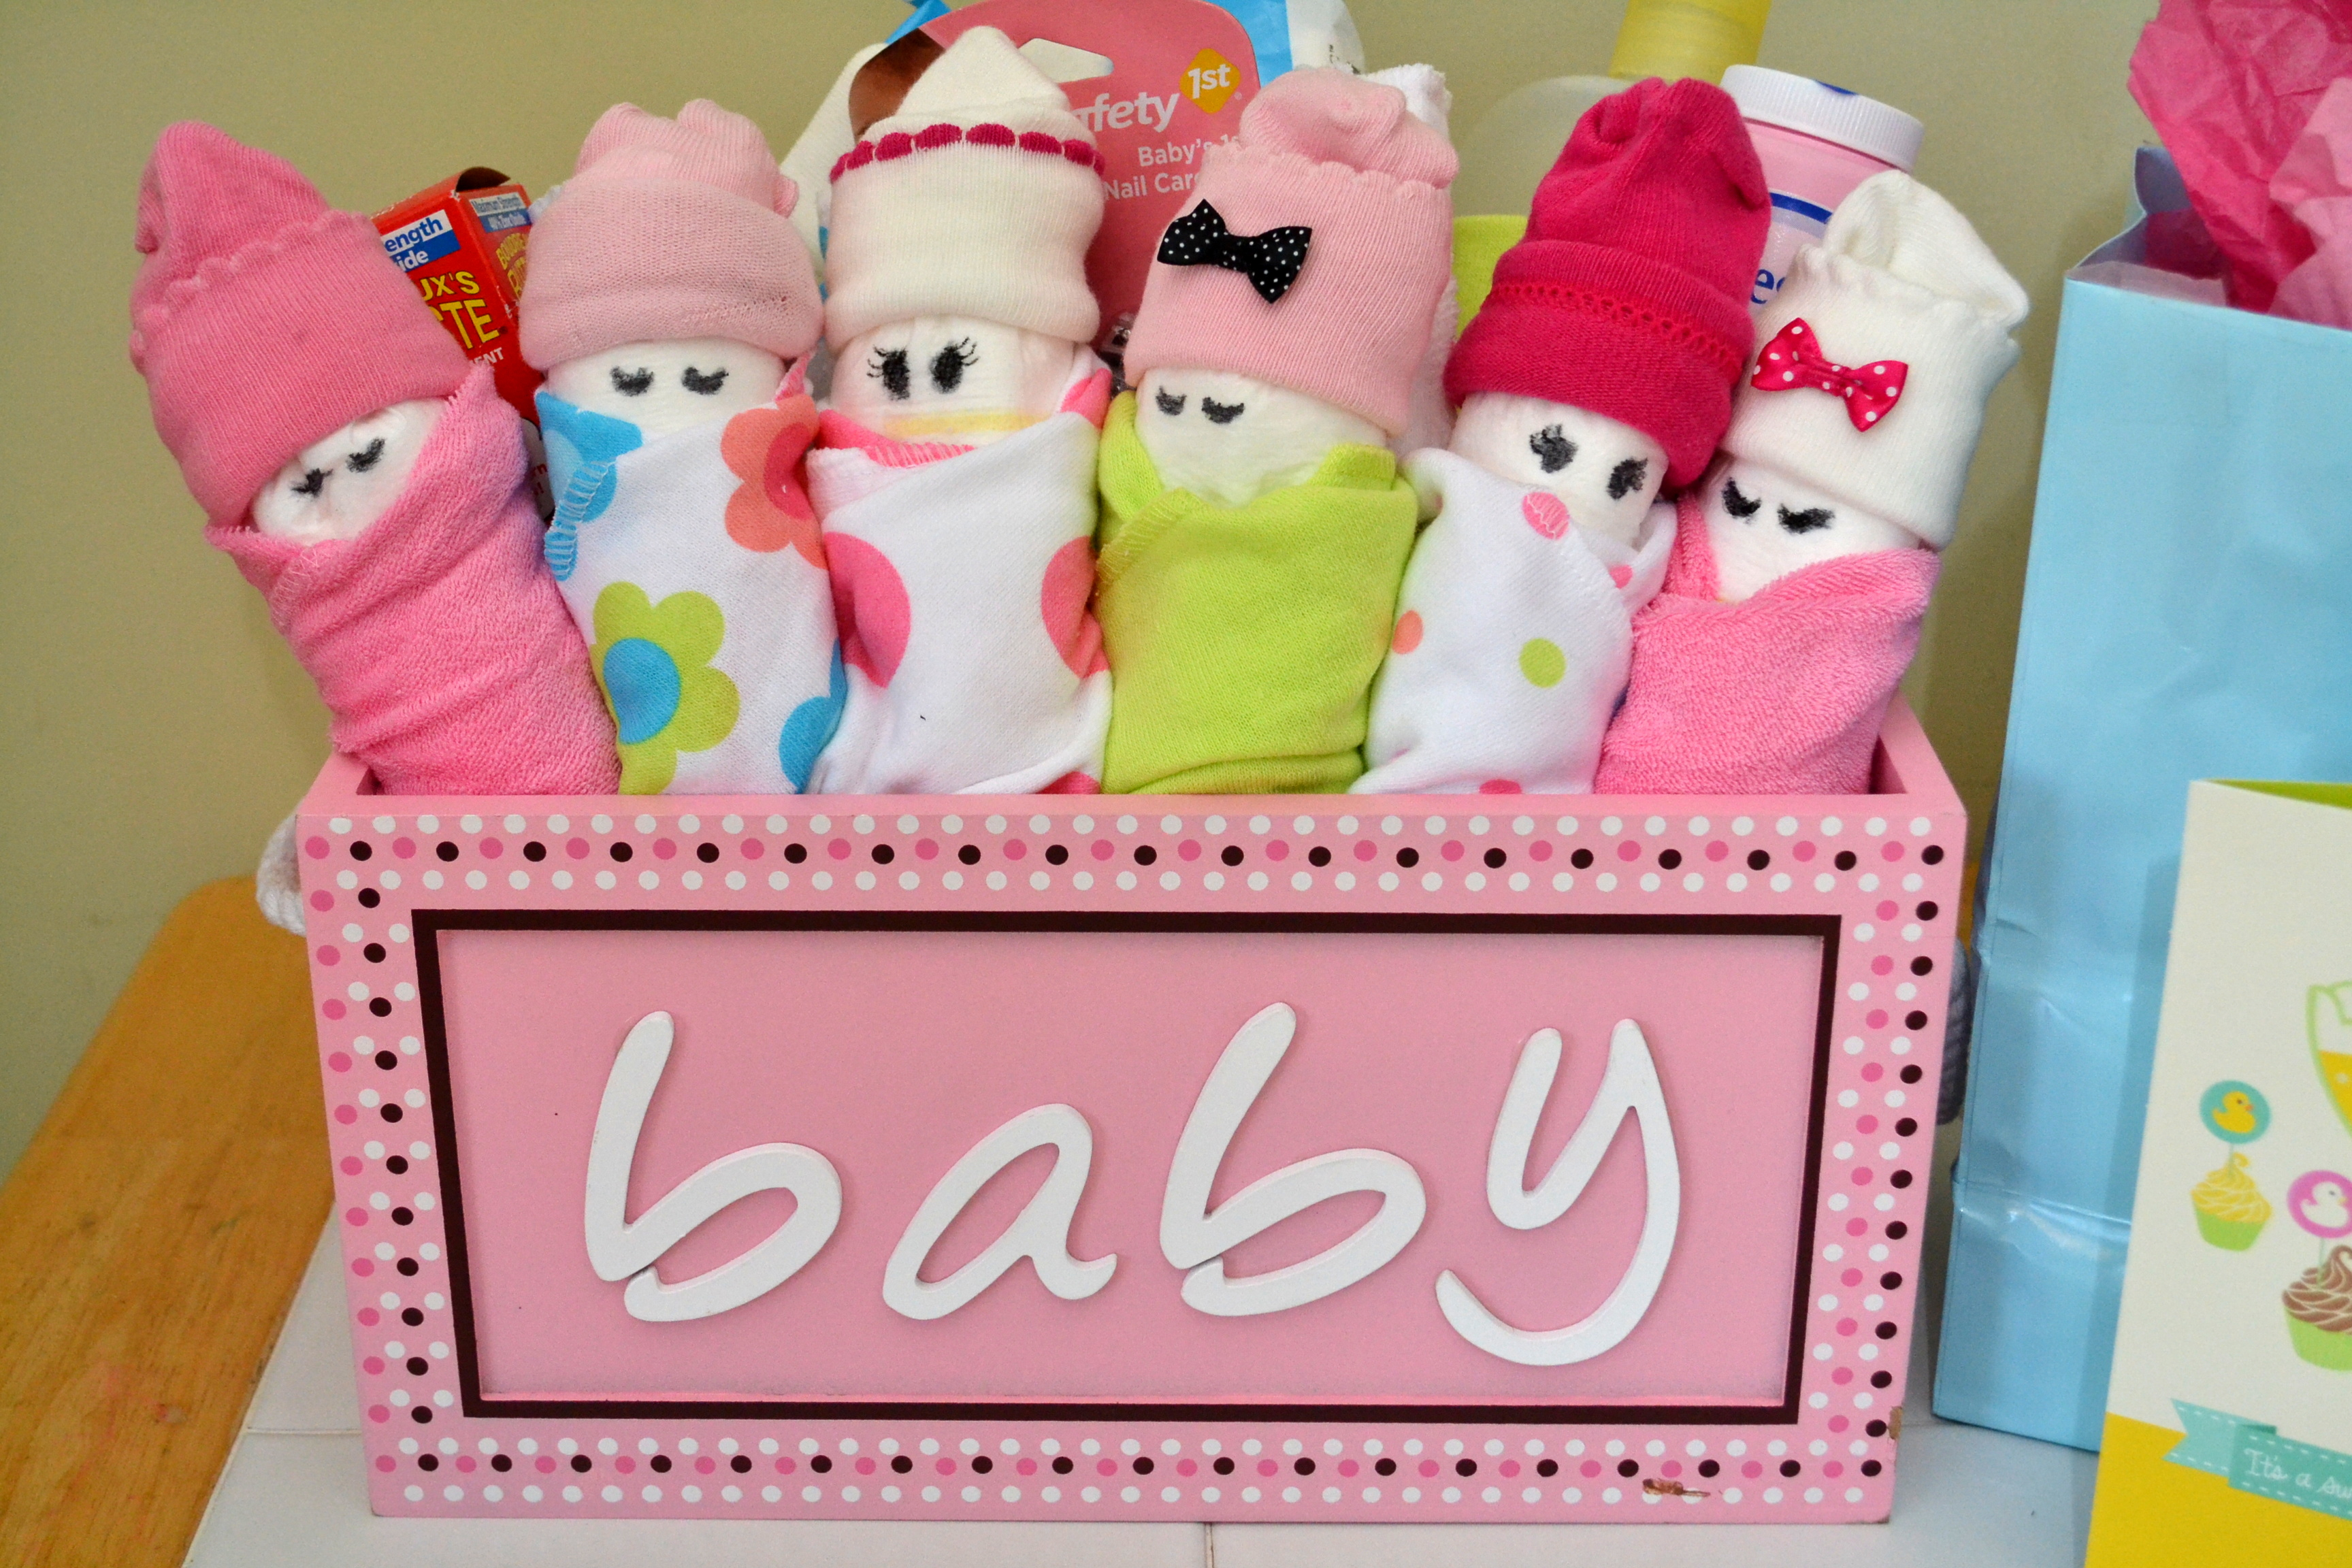 Full Size of Baby Shower:enamour Baby Shower Gifts For Guests Picture Ideas Baby Shower Gifts For Guests Throwing A Baby Shower Ideas Baby Shower Arreglos Baby Shower Niño Baby Favors Baby Shower Photos Baby Shower Quotes Essential Baby Shower Gifts Diy Babies